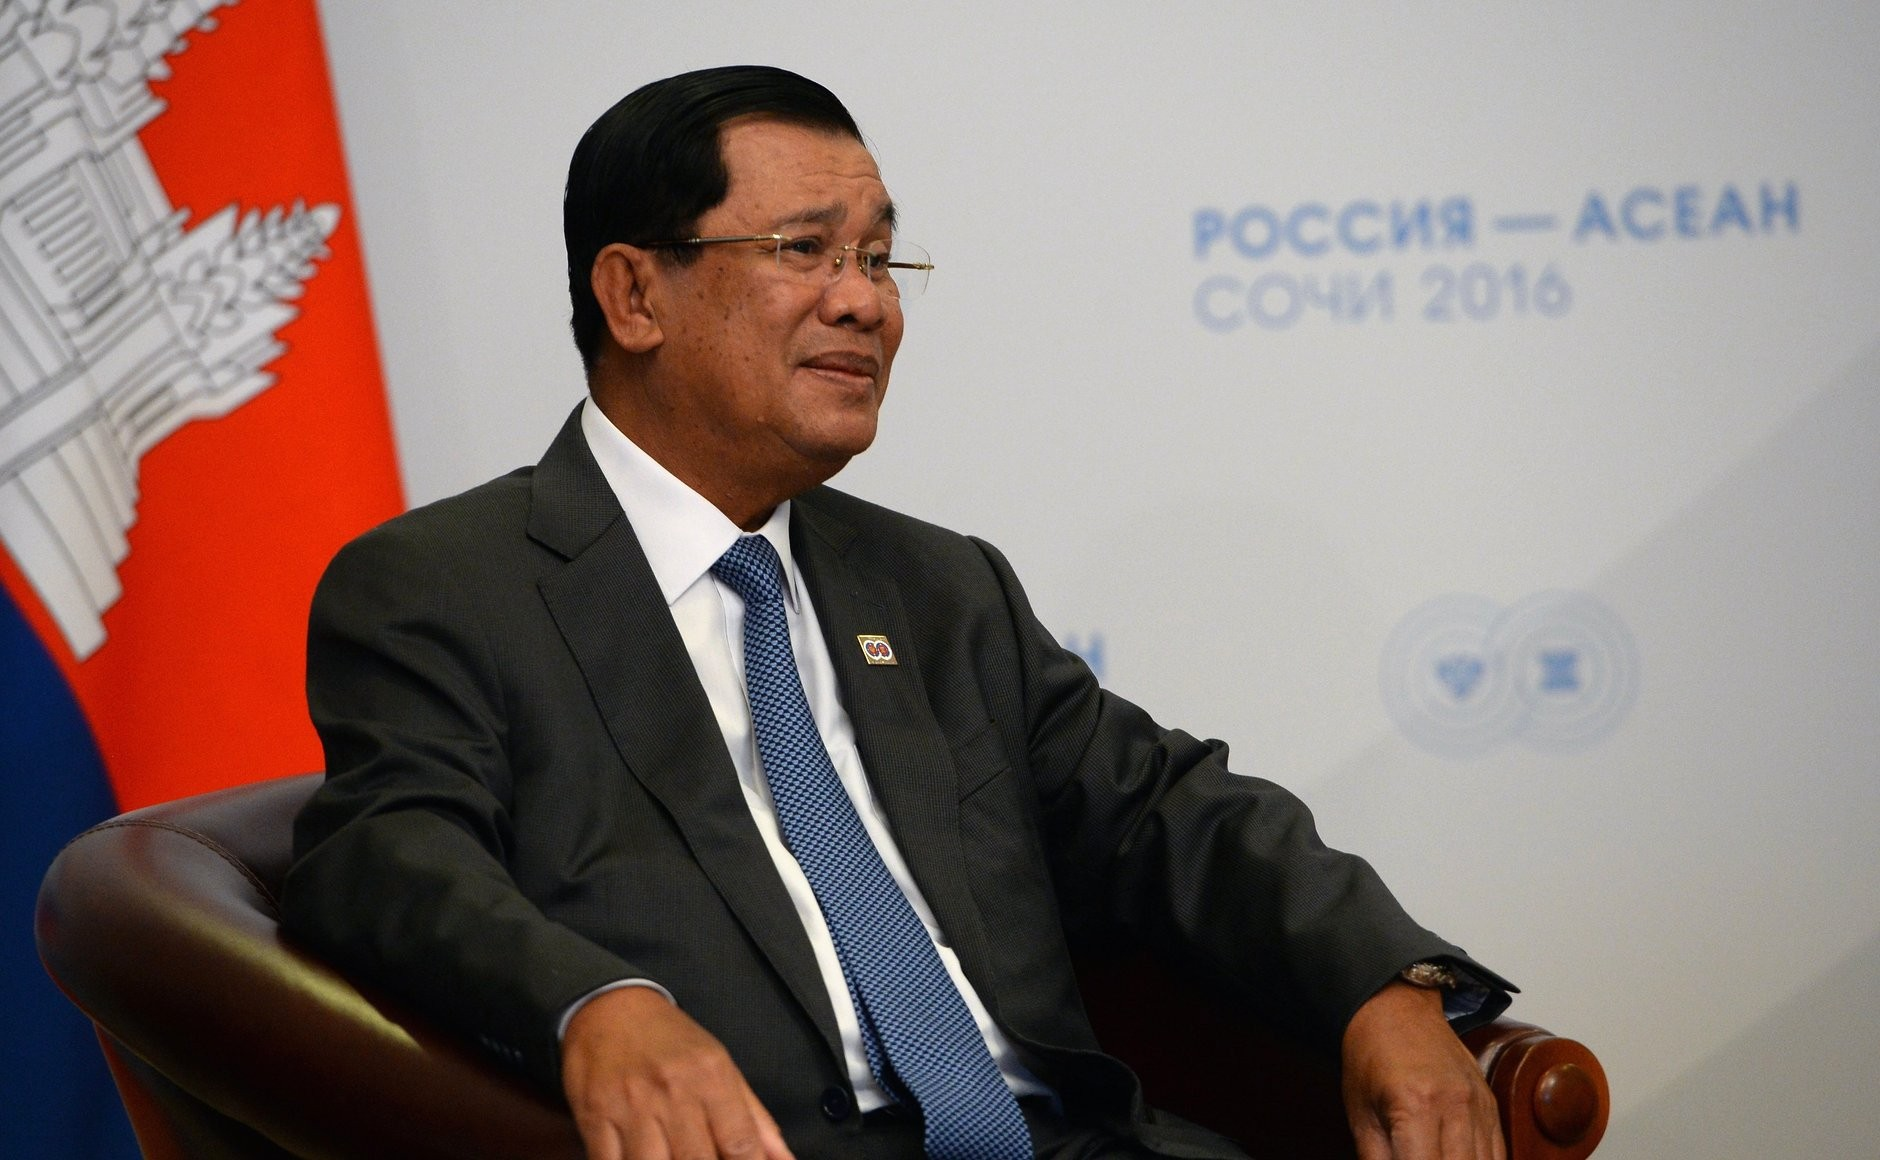 Prime Minister Hun Sen became the leader of an effectively one-party Cambodia in his July 2018 re-election, whose legitimacy has been challenged. (Kremlin)